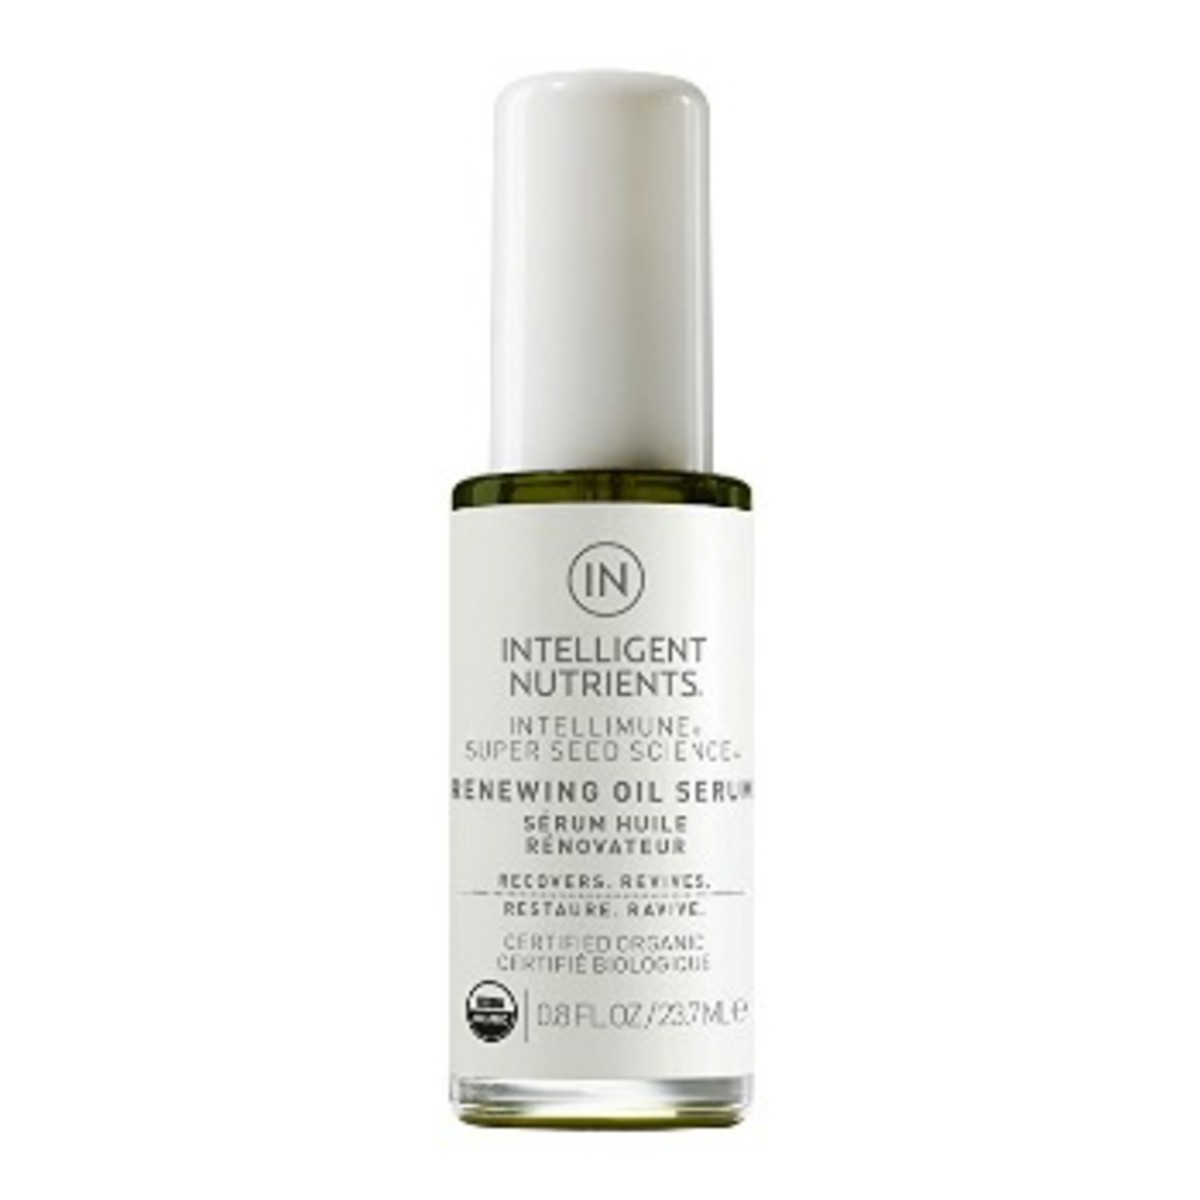 Intelligent Nutrients - Renewing Oil Serum